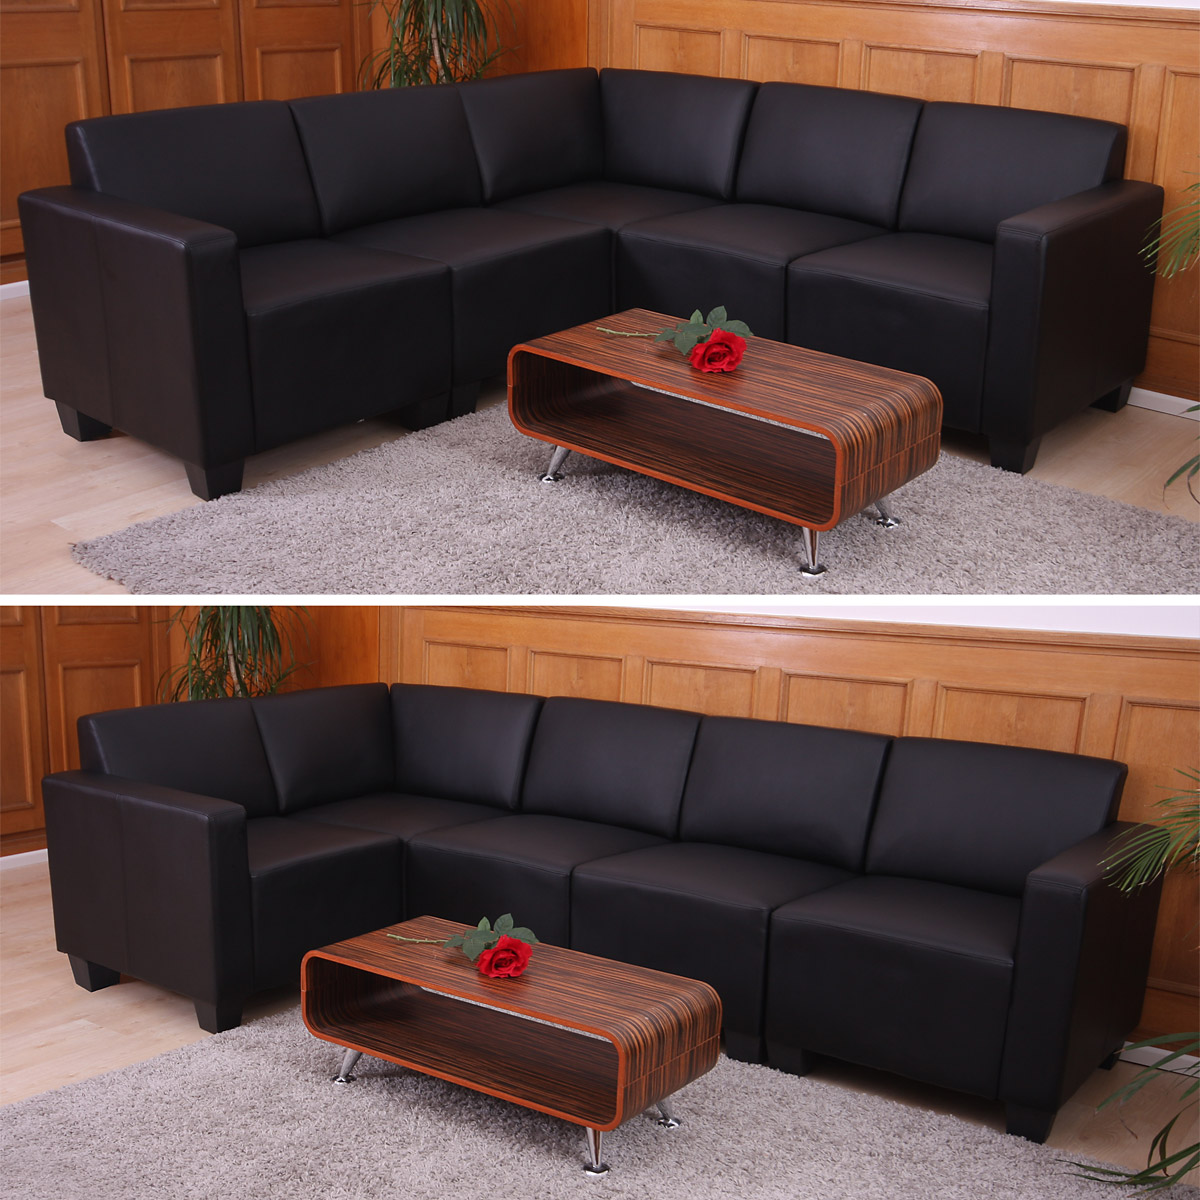 modular sofa system couch garnitur lyon 5 kunstleder. Black Bedroom Furniture Sets. Home Design Ideas